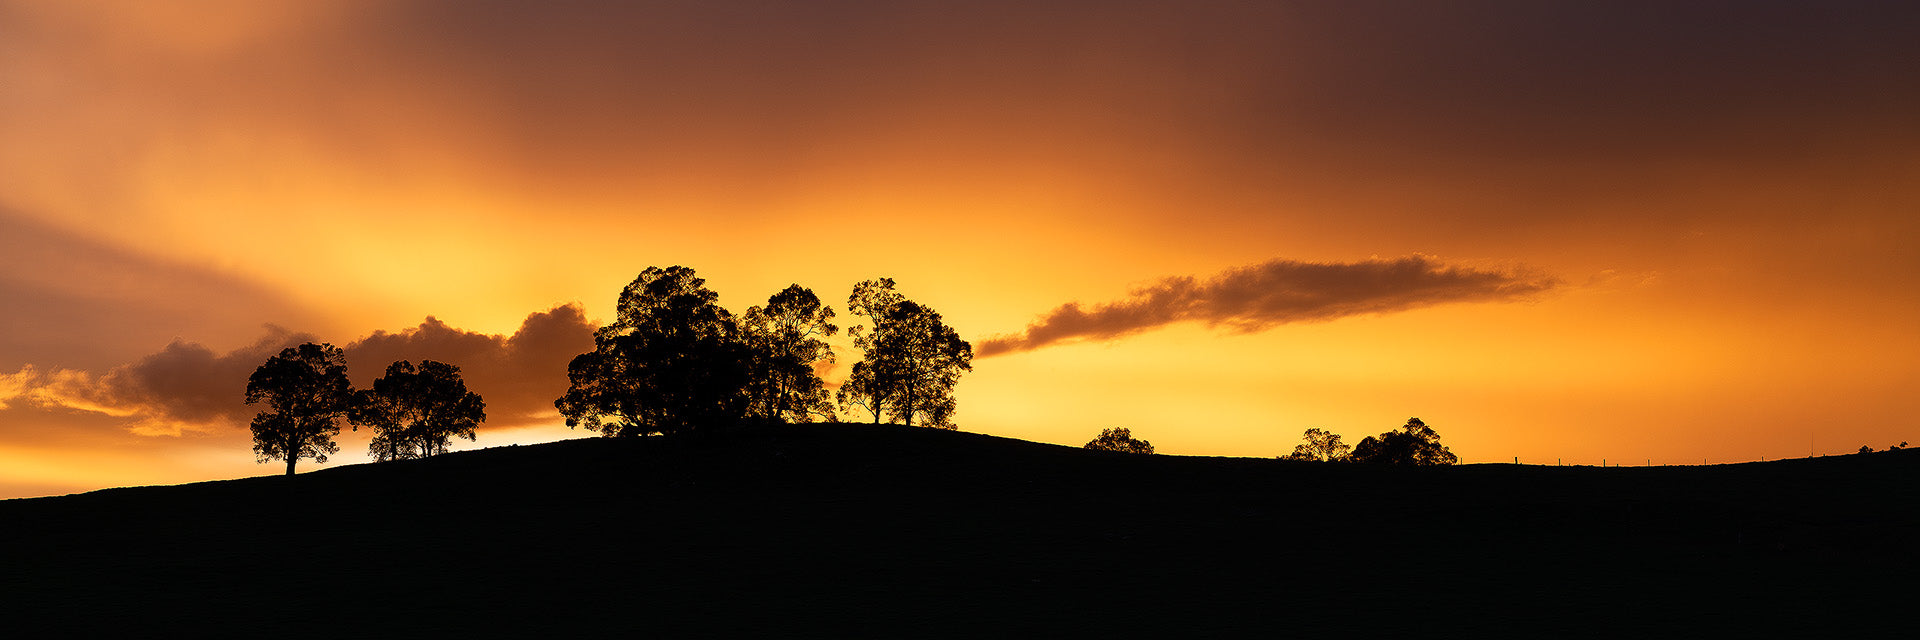 photography silhouette of sunrise with trees and rolling hills in the Donnybrook region of Western Australia.